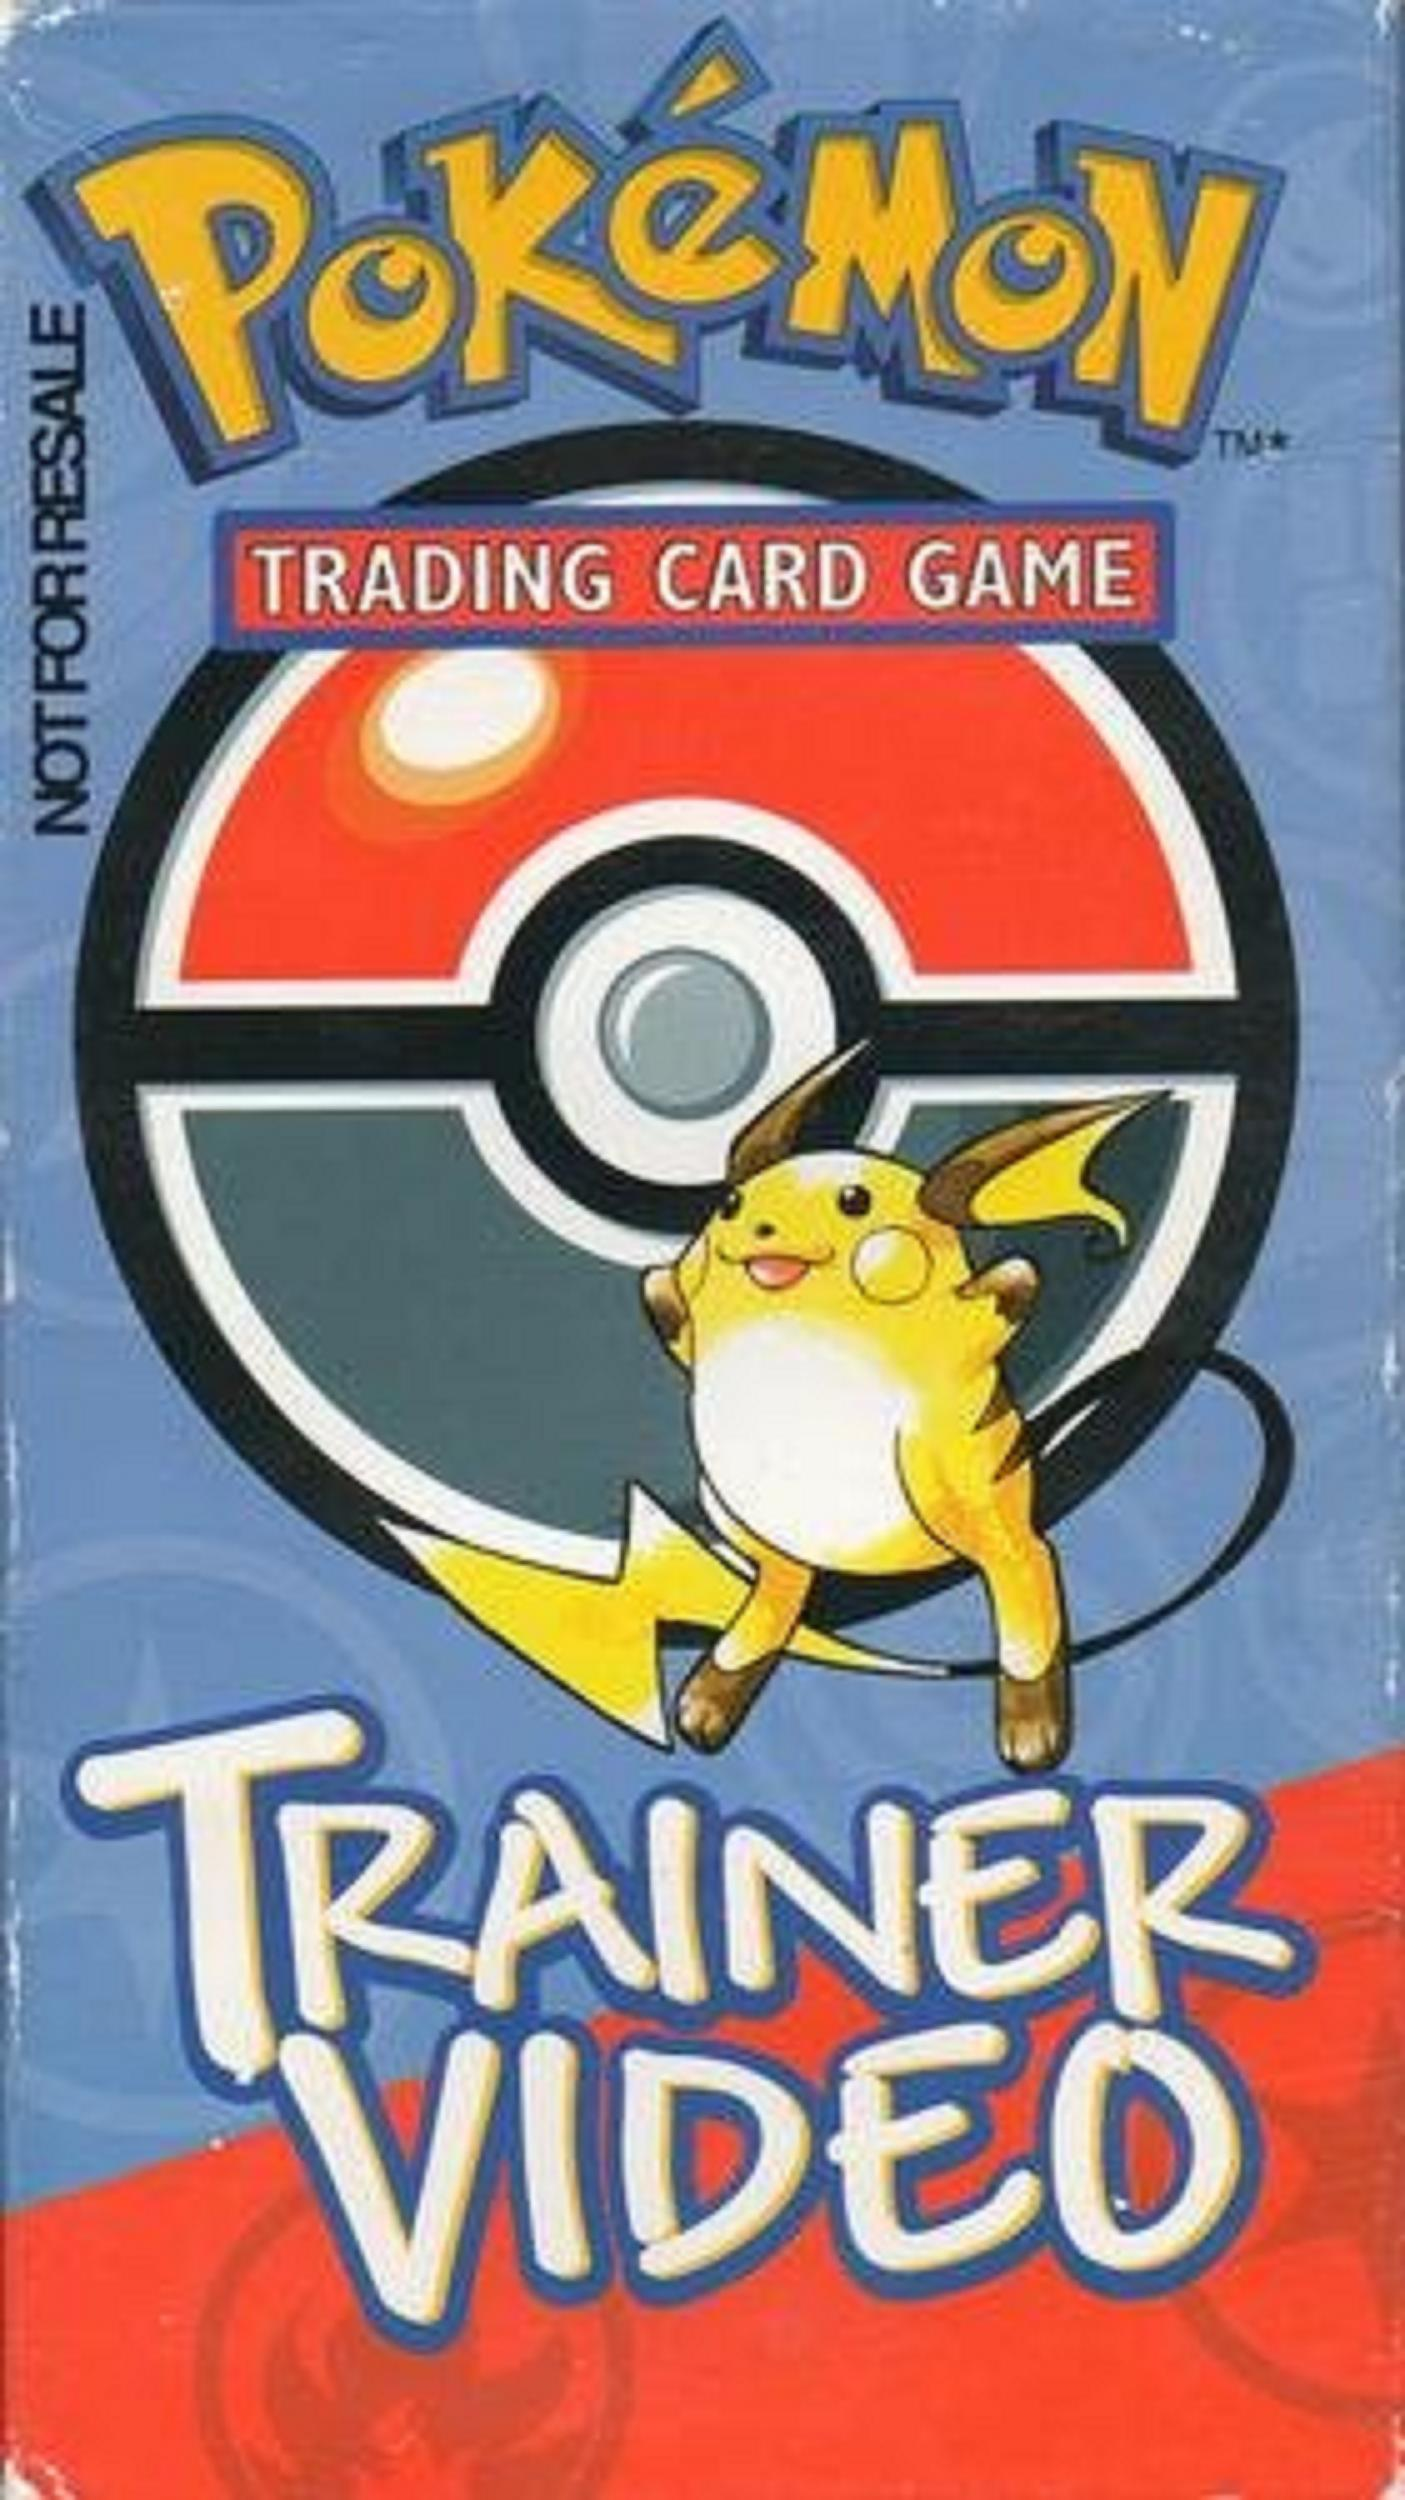 Pokemon Video Games Trading Cards